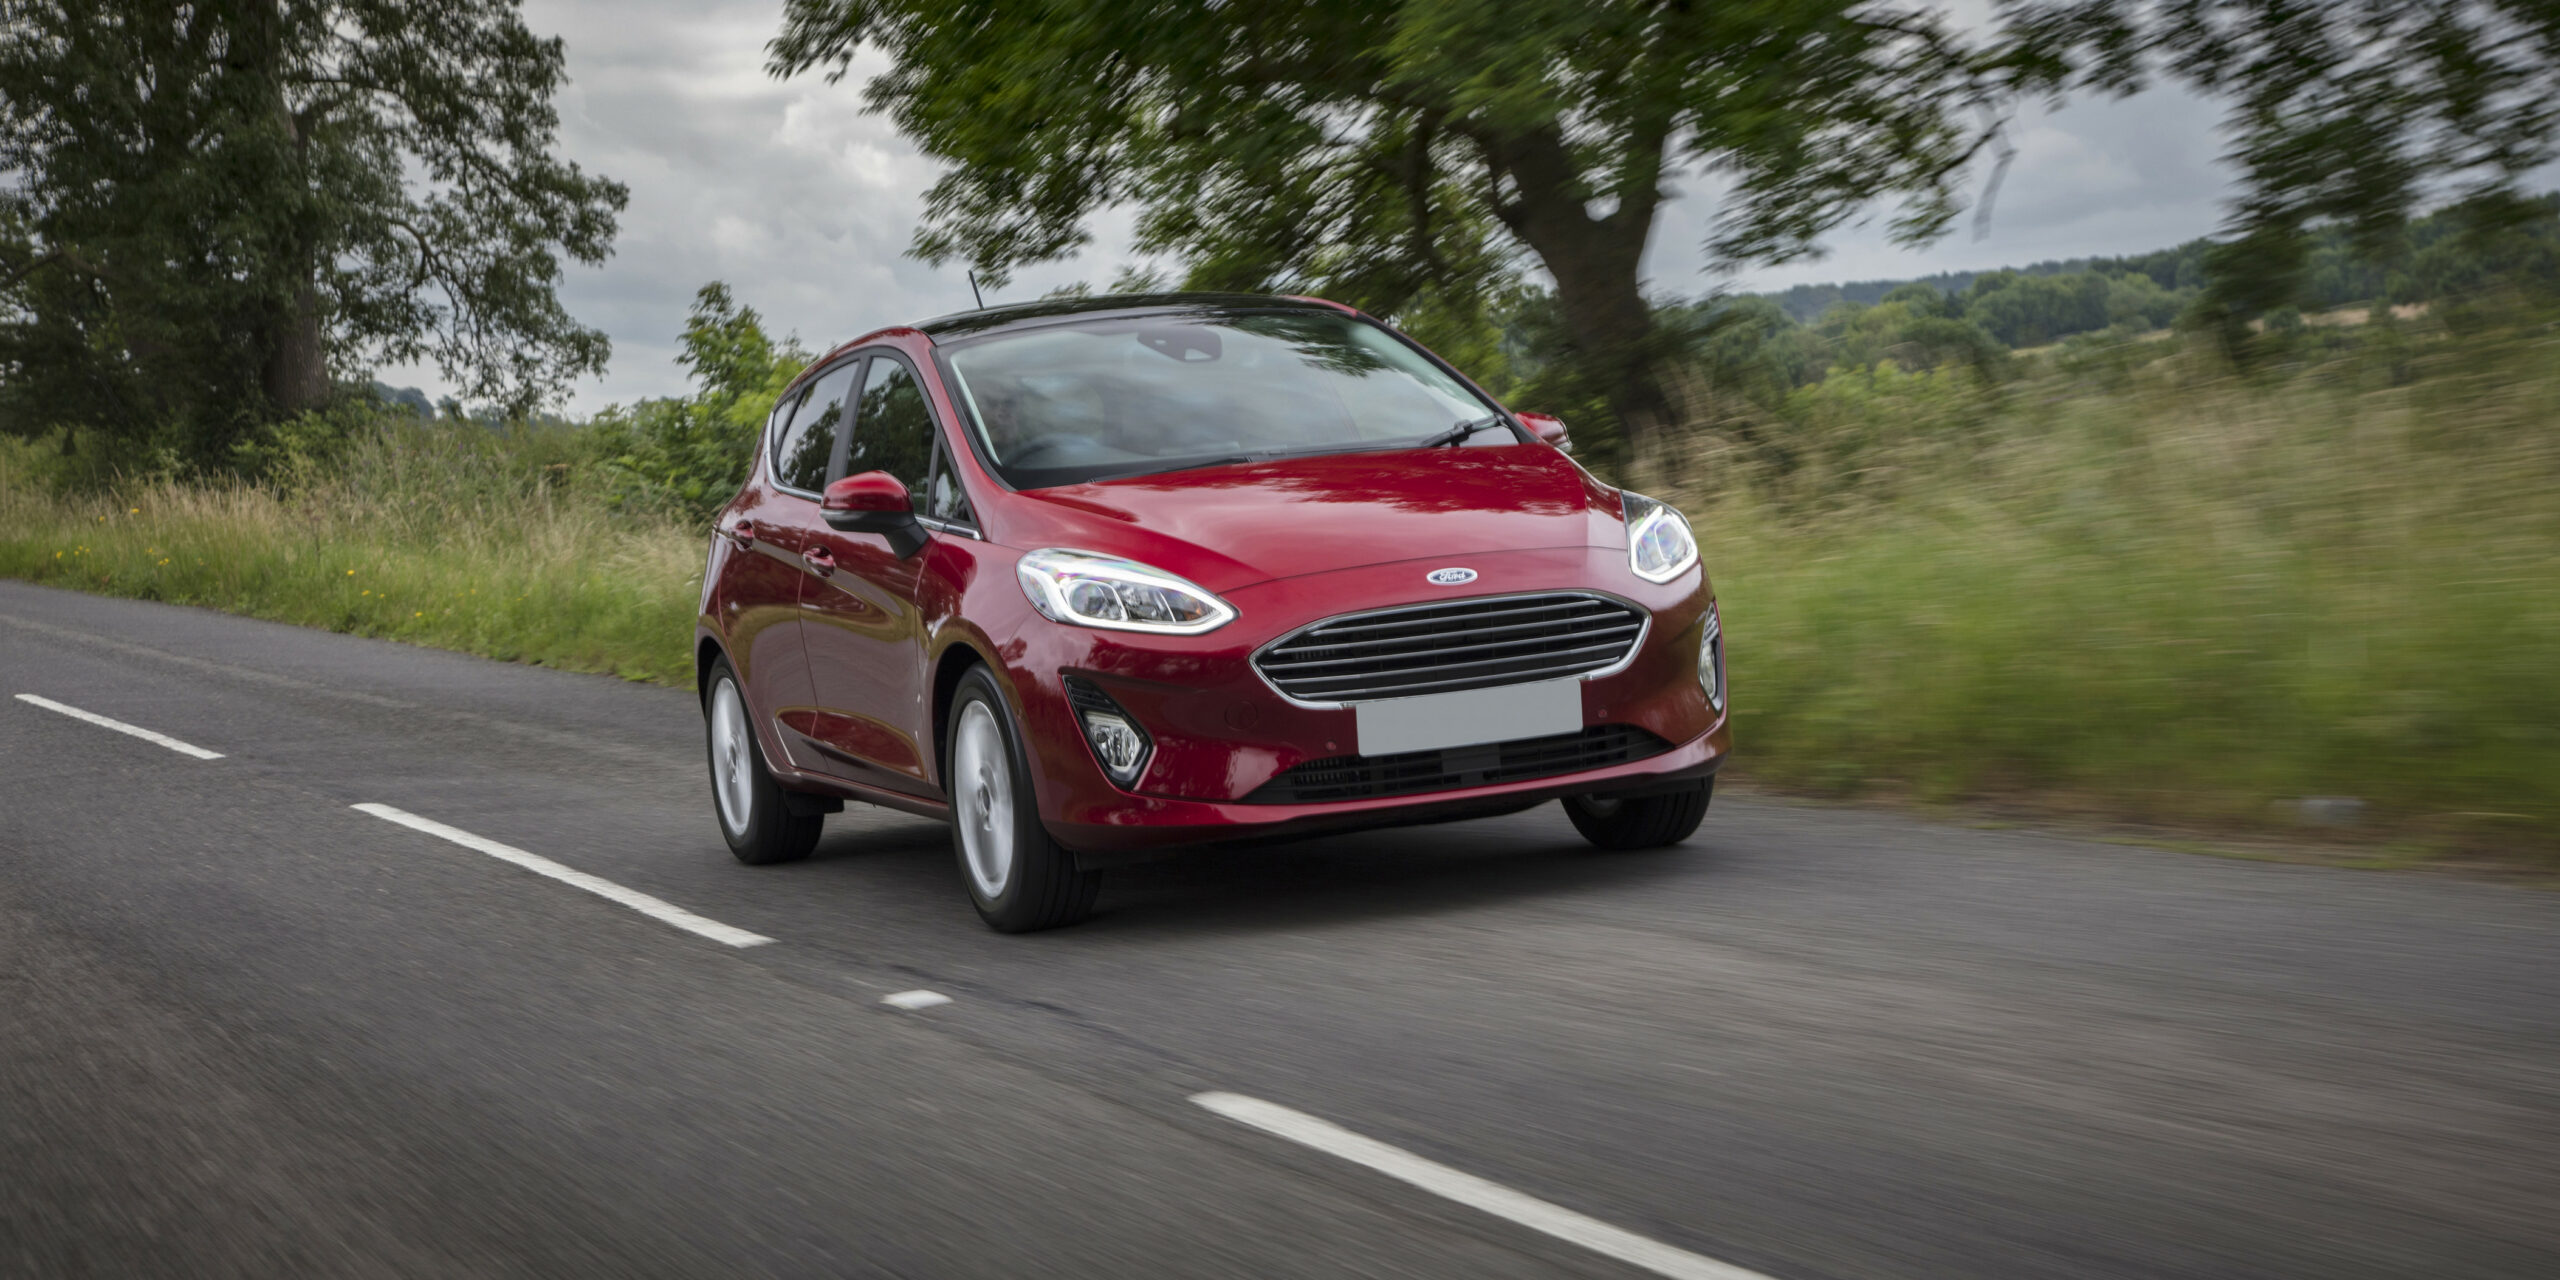 New Ford Fiesta Review | carwow - ford fiesta zetec 2020 review